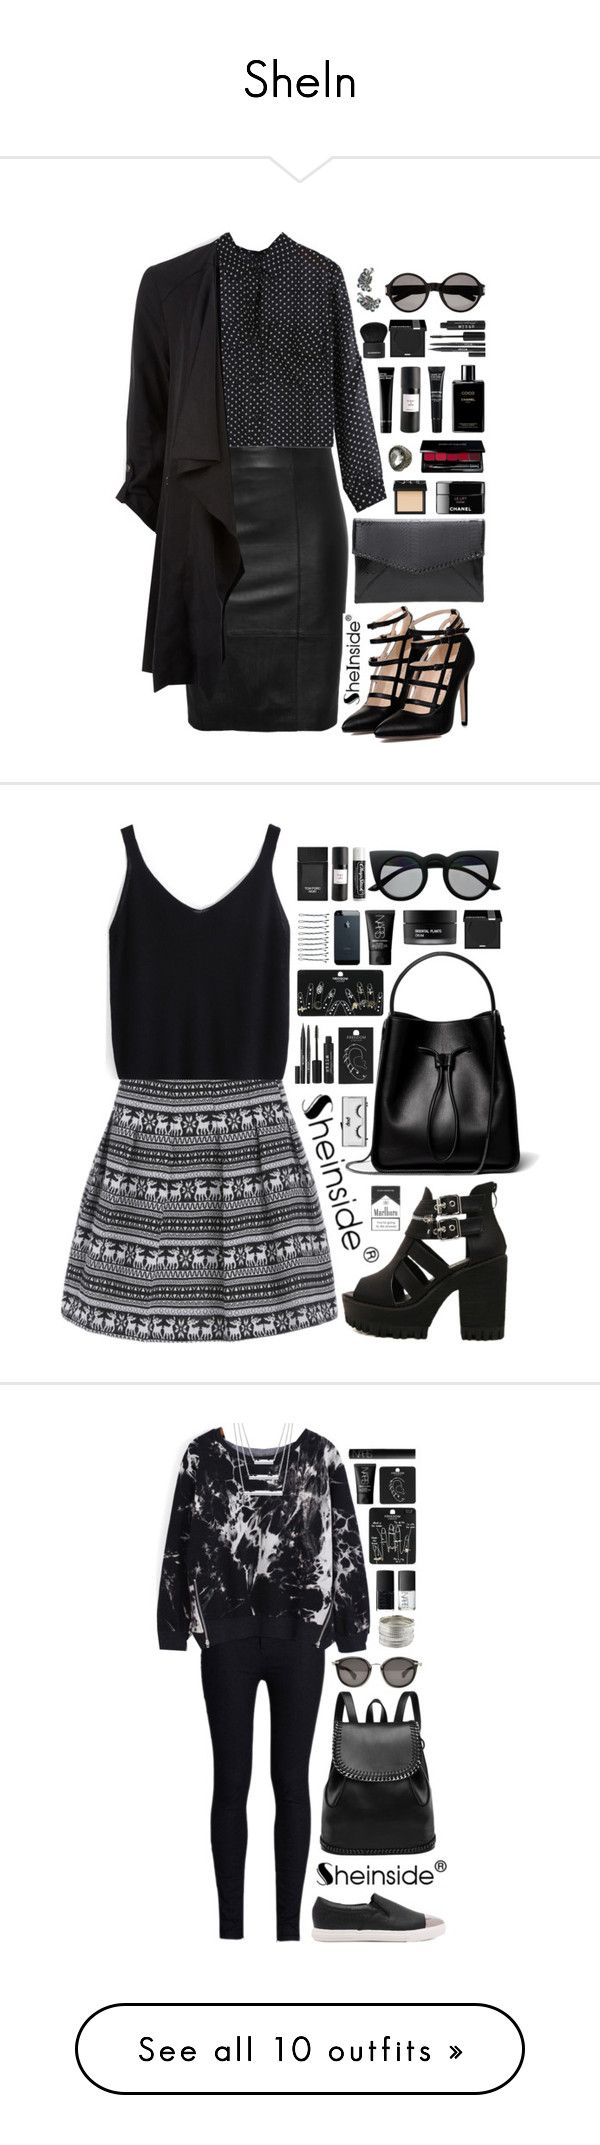 """""""SheIn"""" by scarlett-morwenna ❤ liked on Polyvore featuring NARS Cosmetics, Chanel, MAKE UP FOR EVER, Eight & Bob, Bobbi Brown Cosmetics, Givenchy, Stila, Yves Saint Laurent, vintage and 3.1 Phillip Lim"""